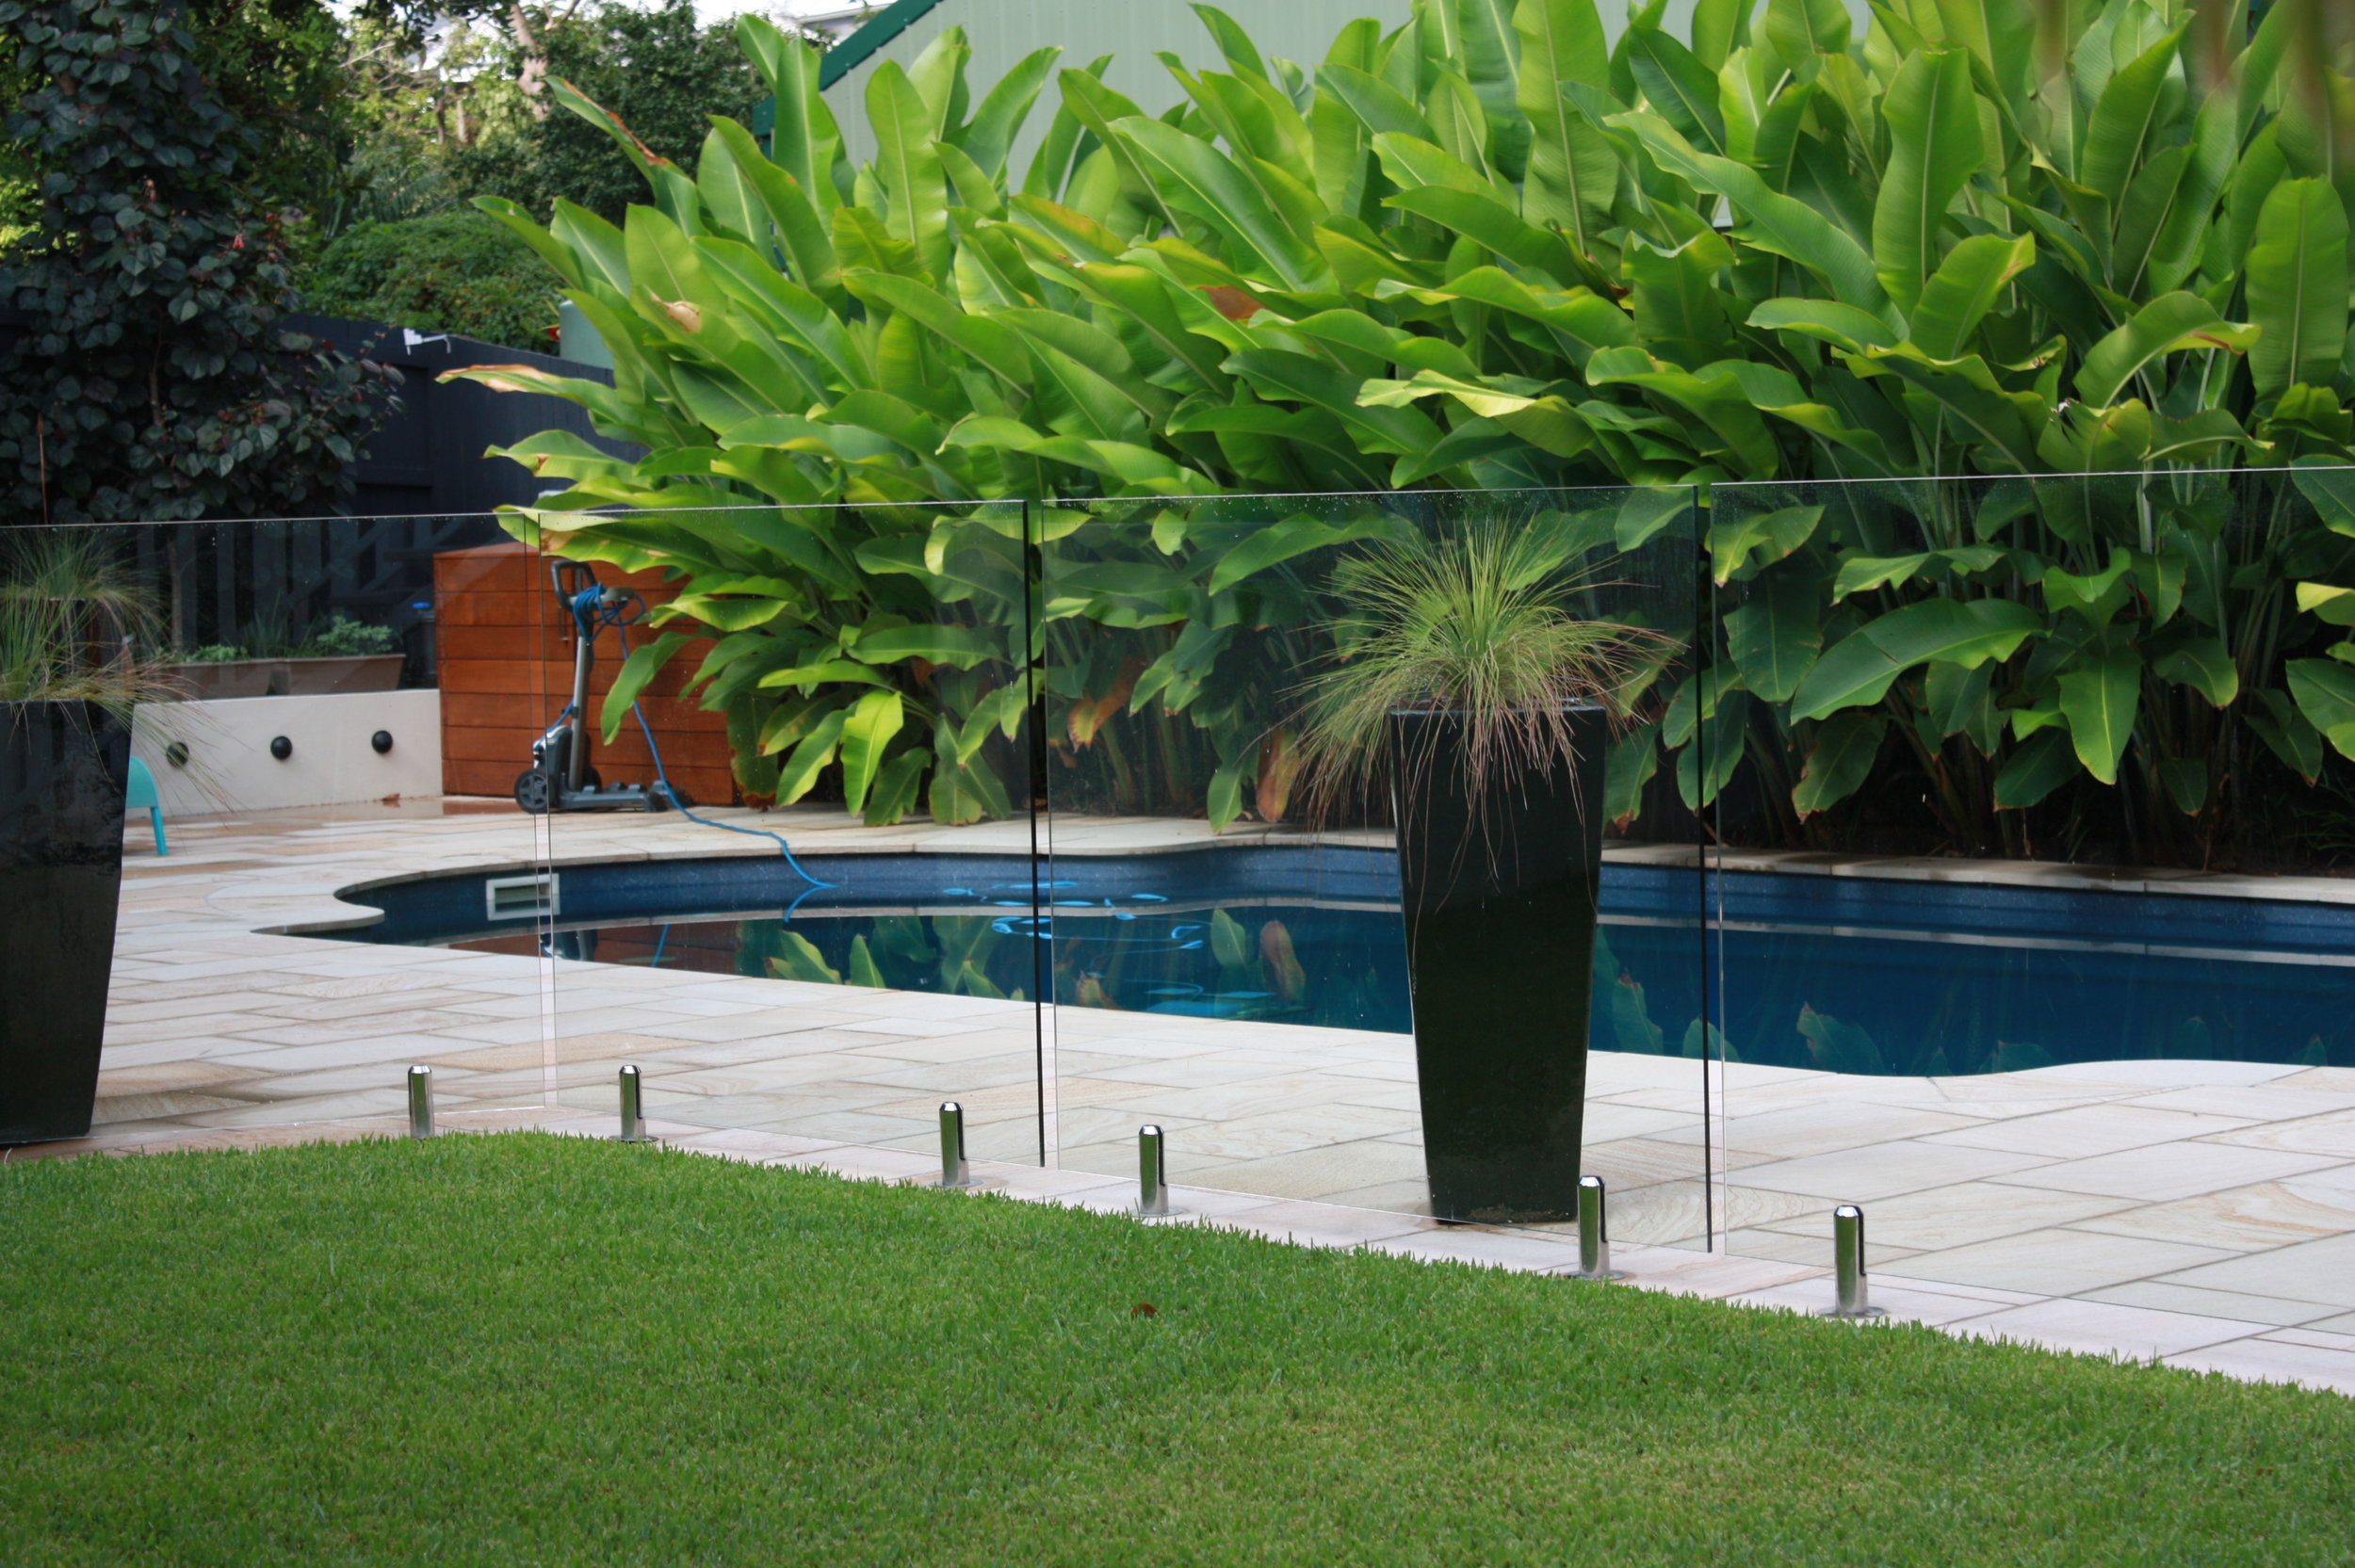 Broad-leafed plants soften the pool surrounds.